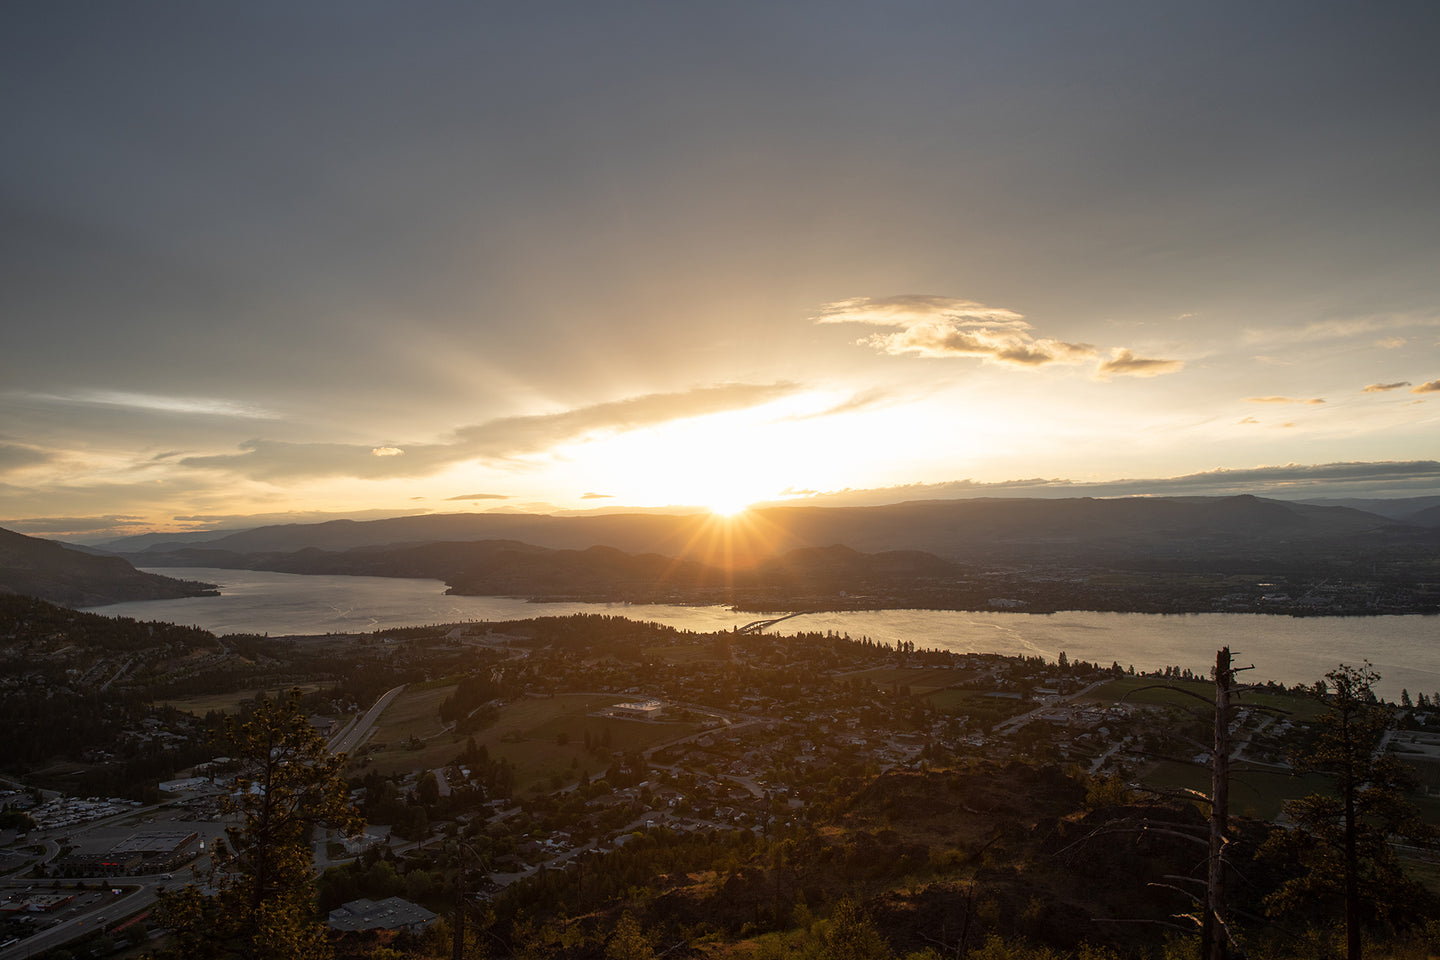 Sunrise over Kelowna